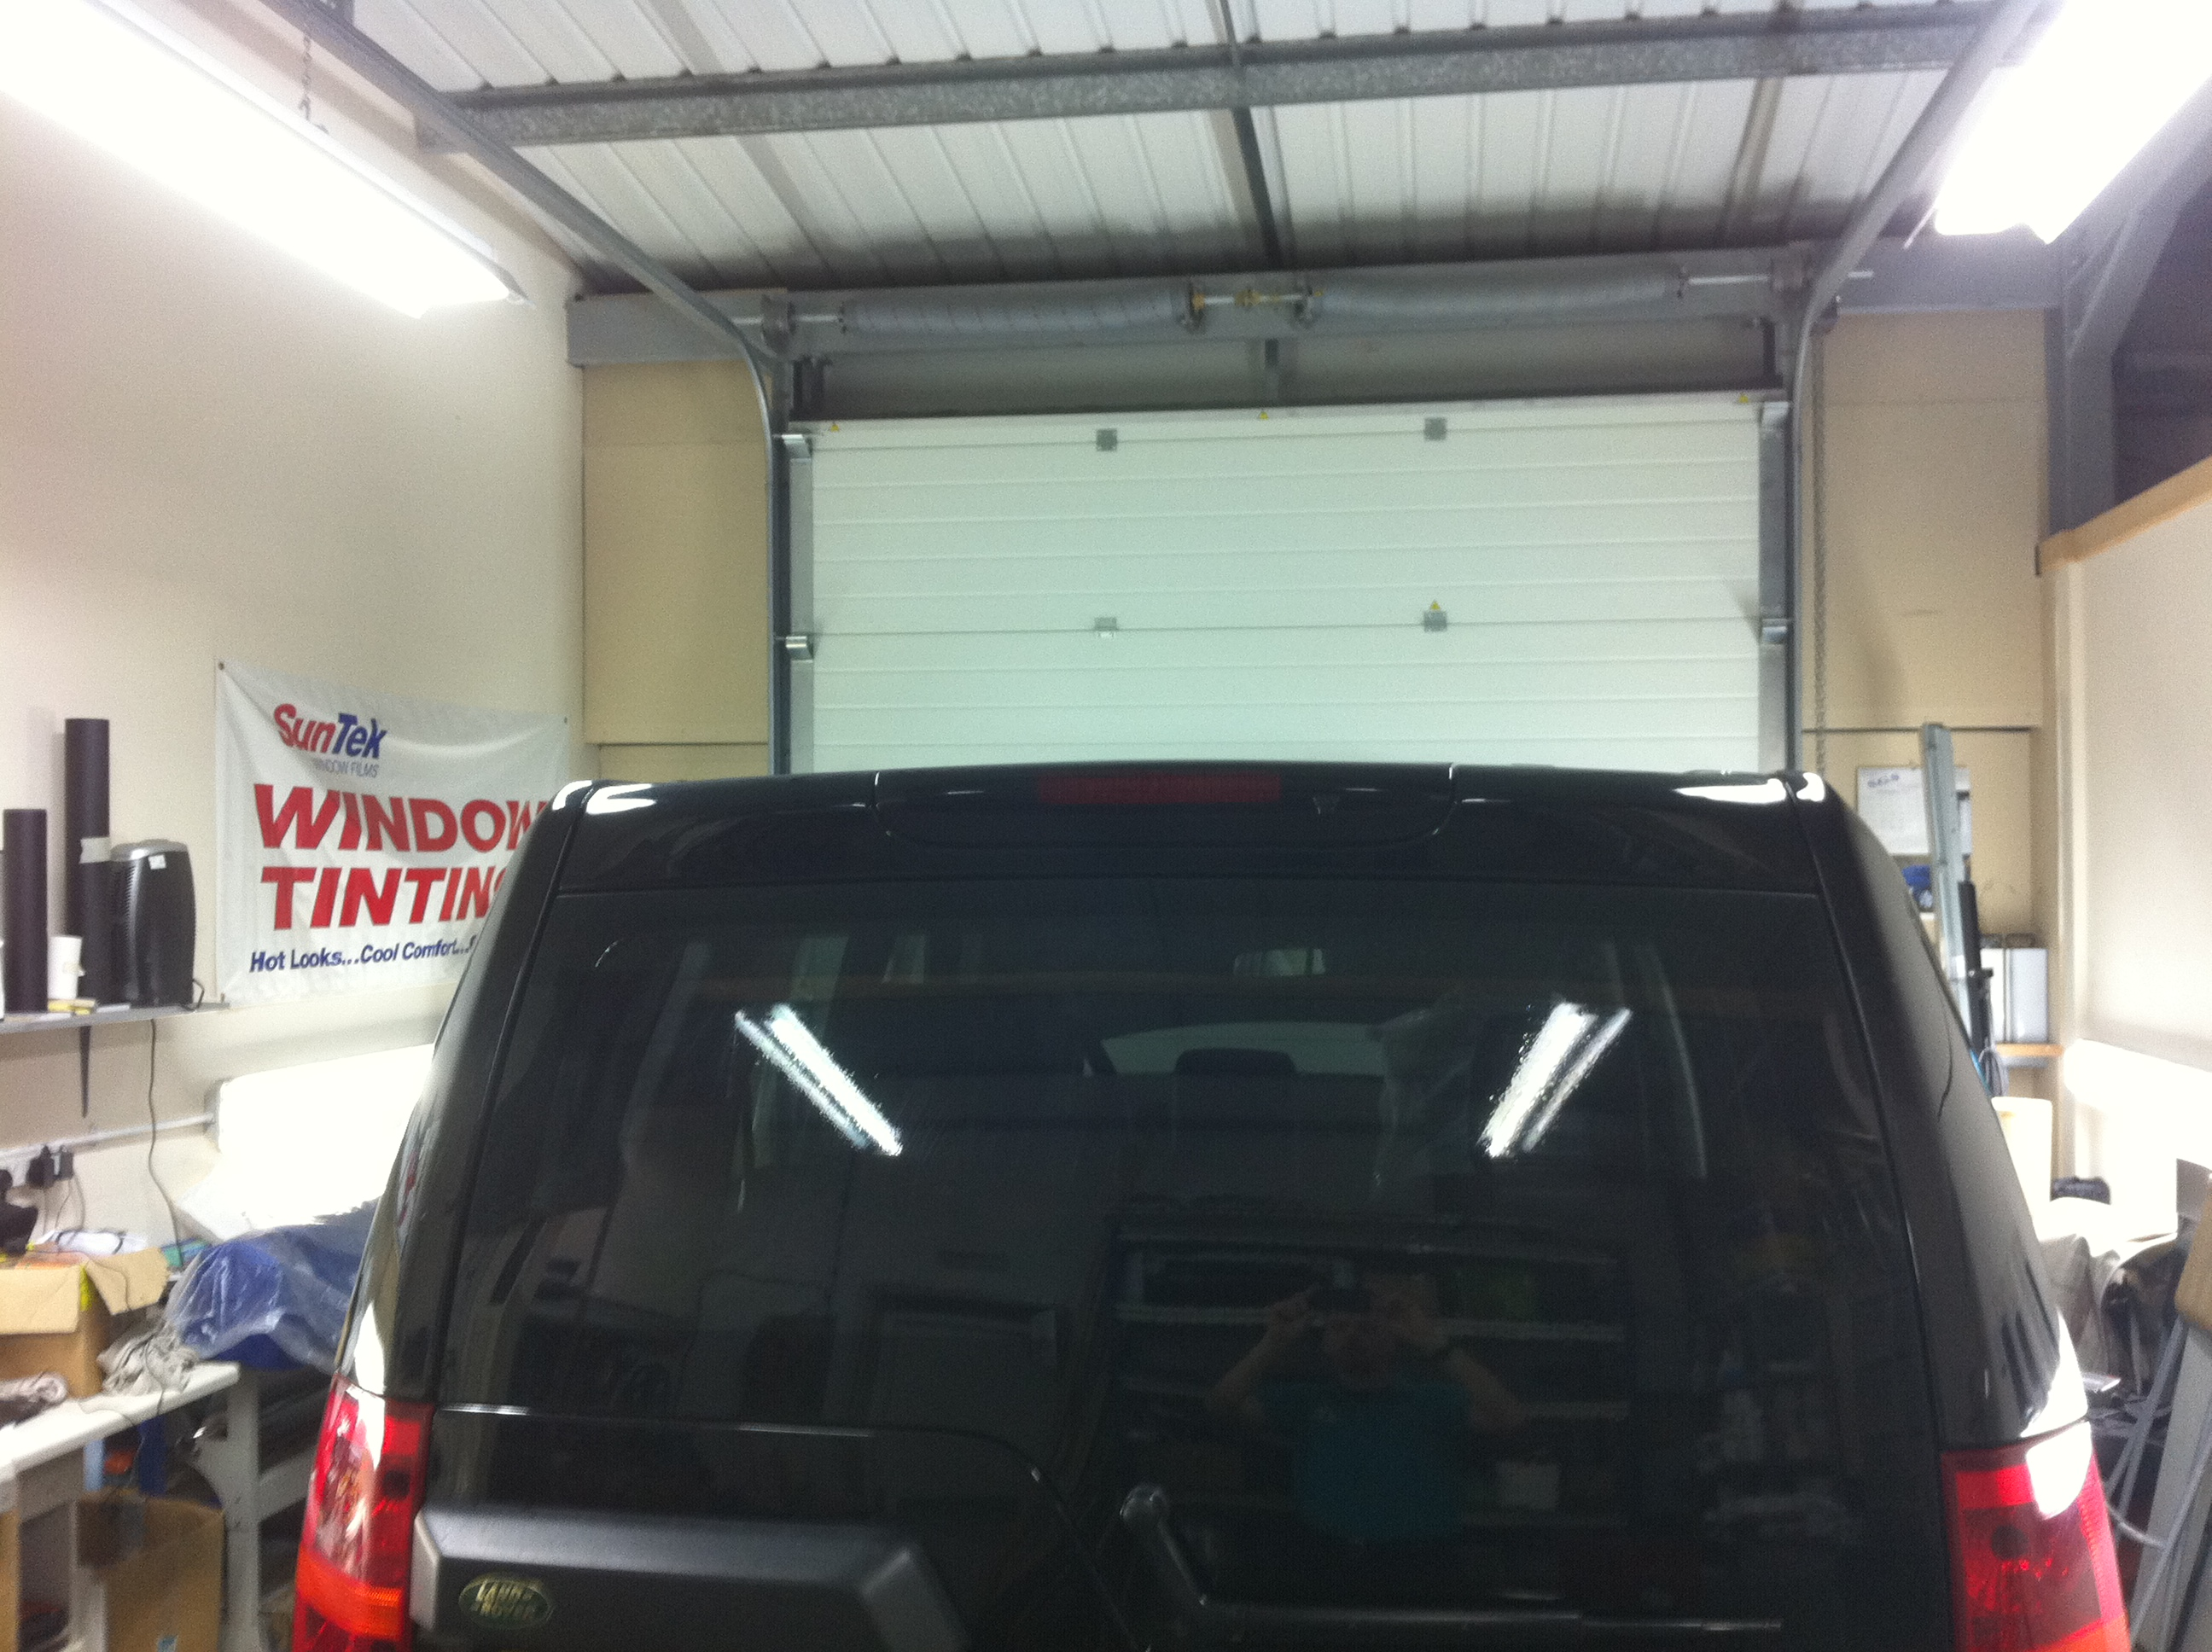 Landrover Window Tinting